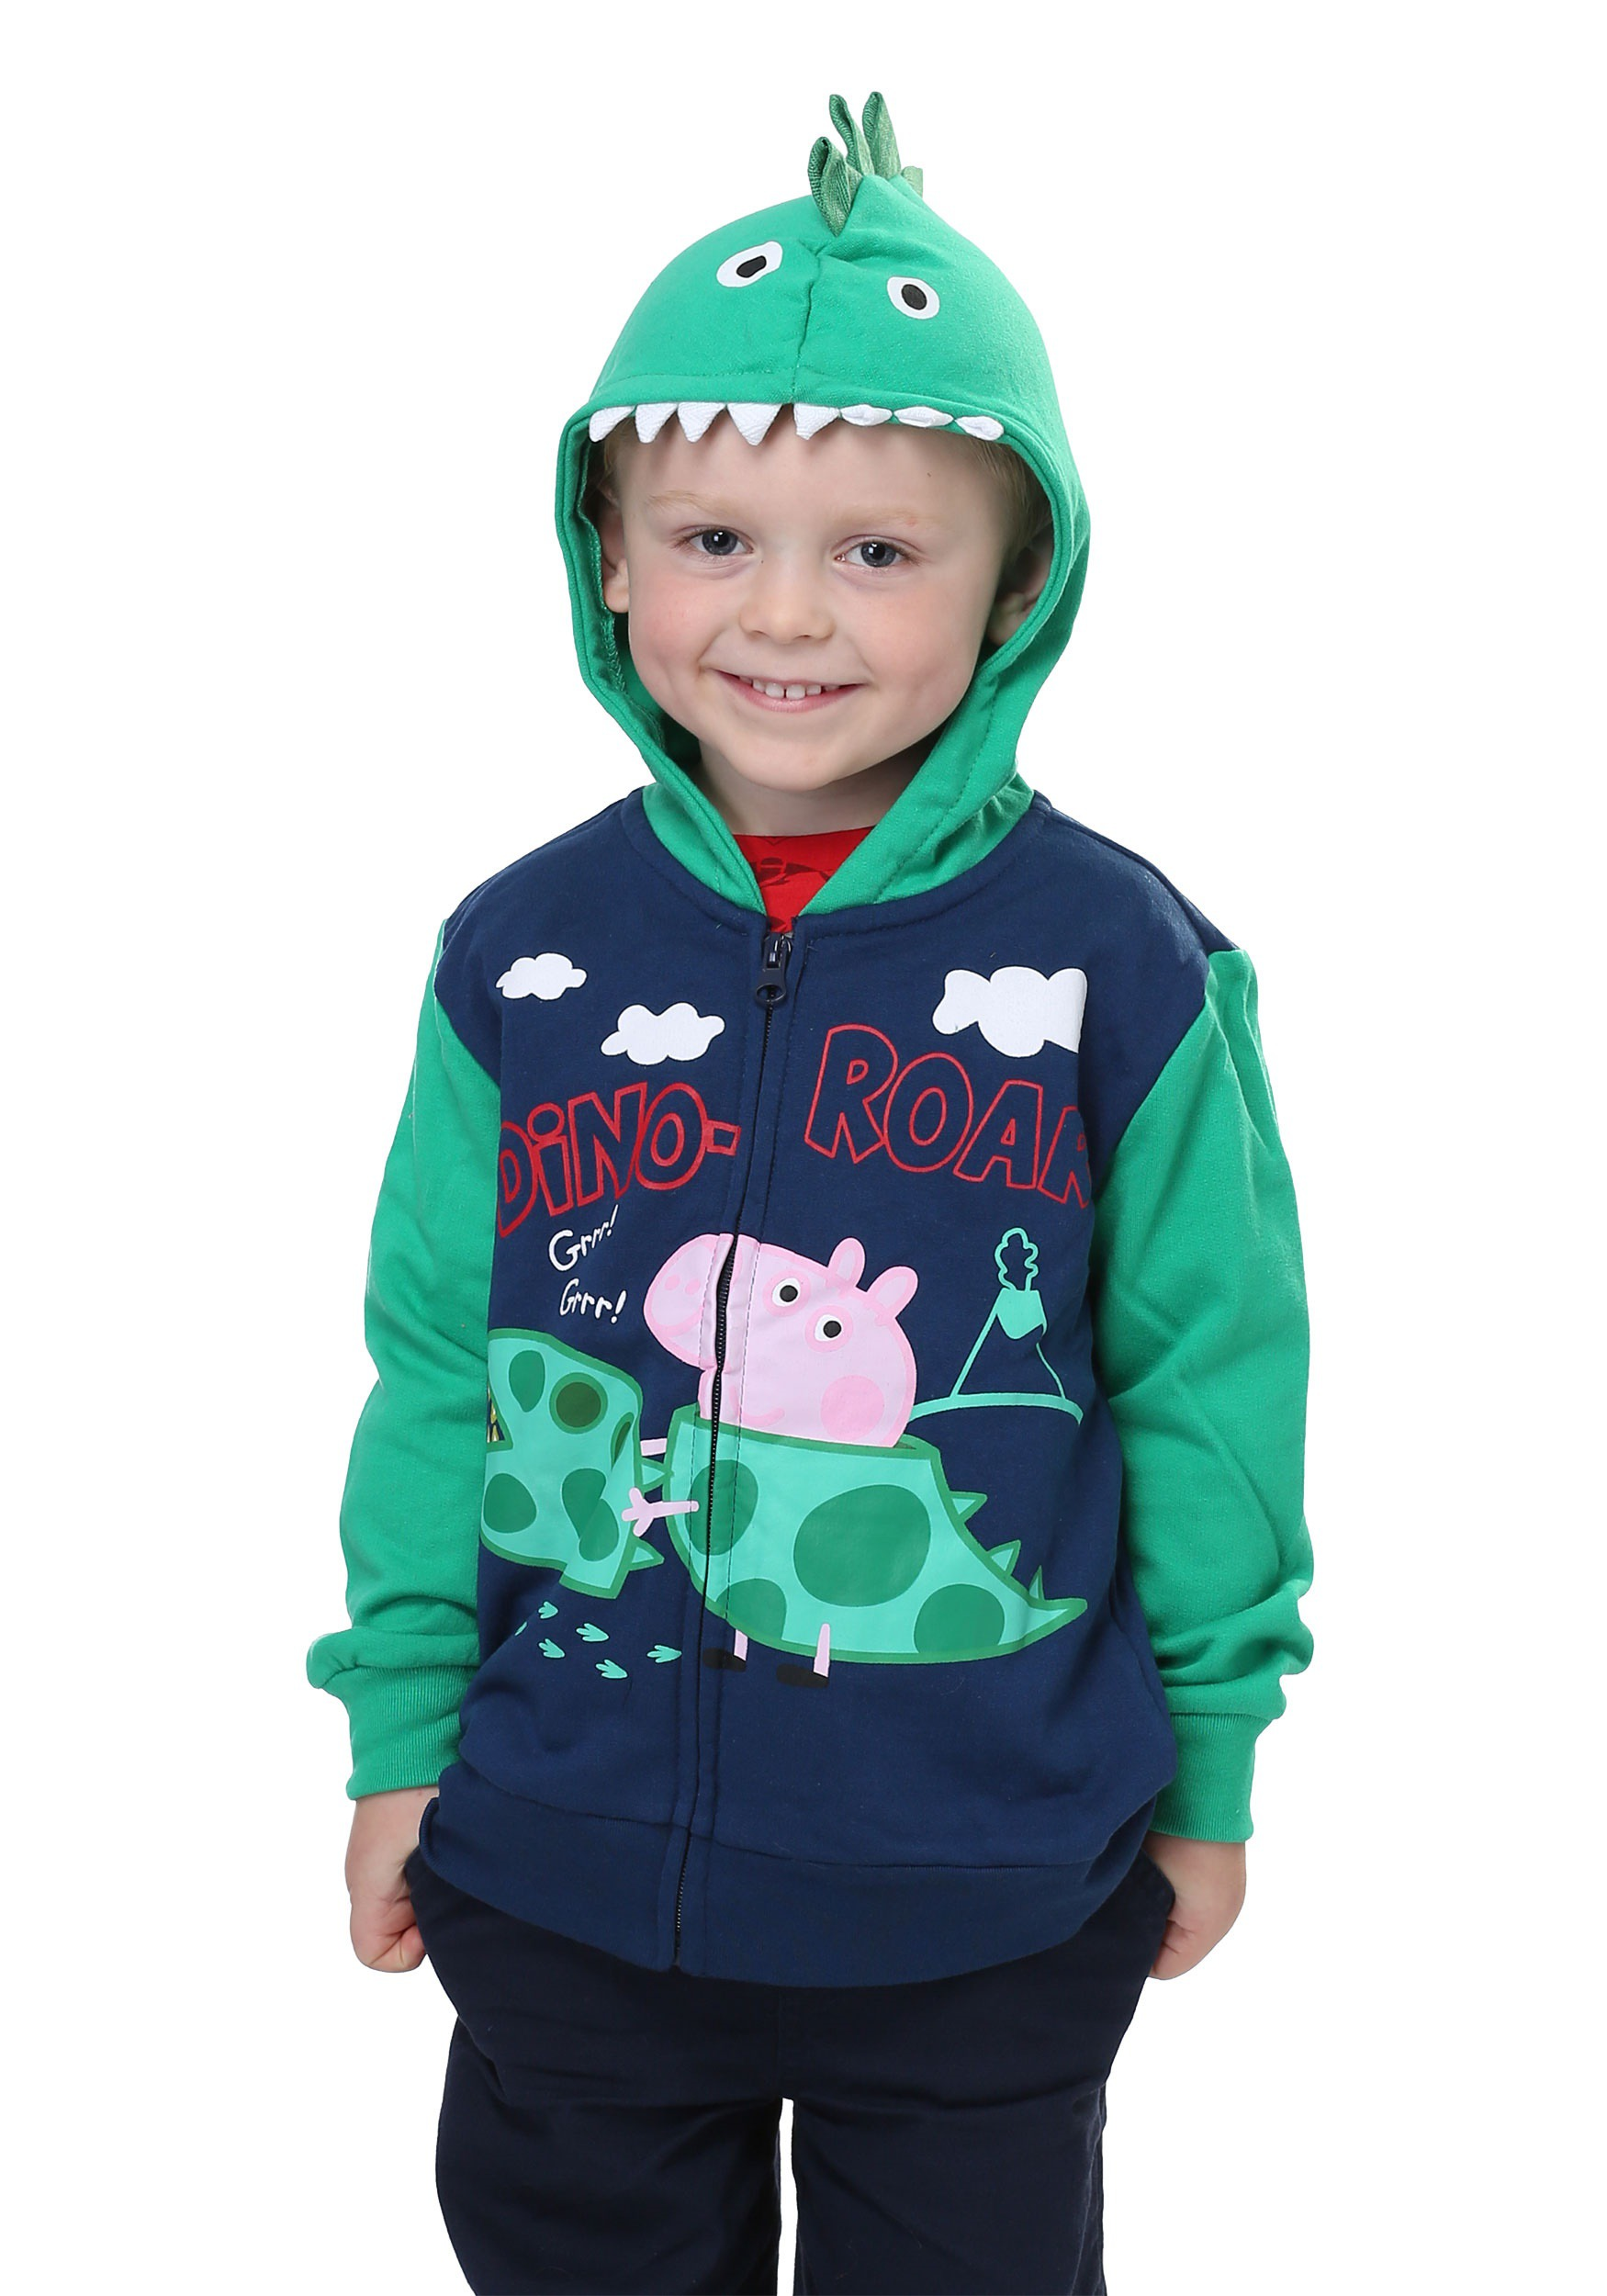 Shop for stylish and fun costume hoodies for kids and adults. These hoodies will keep you warm while you dress as your favorite character. Dress up in a Superman hoodie, Batman hoodie, or browse our selection of Teenage Mutant Ninja Turtle hoodies.